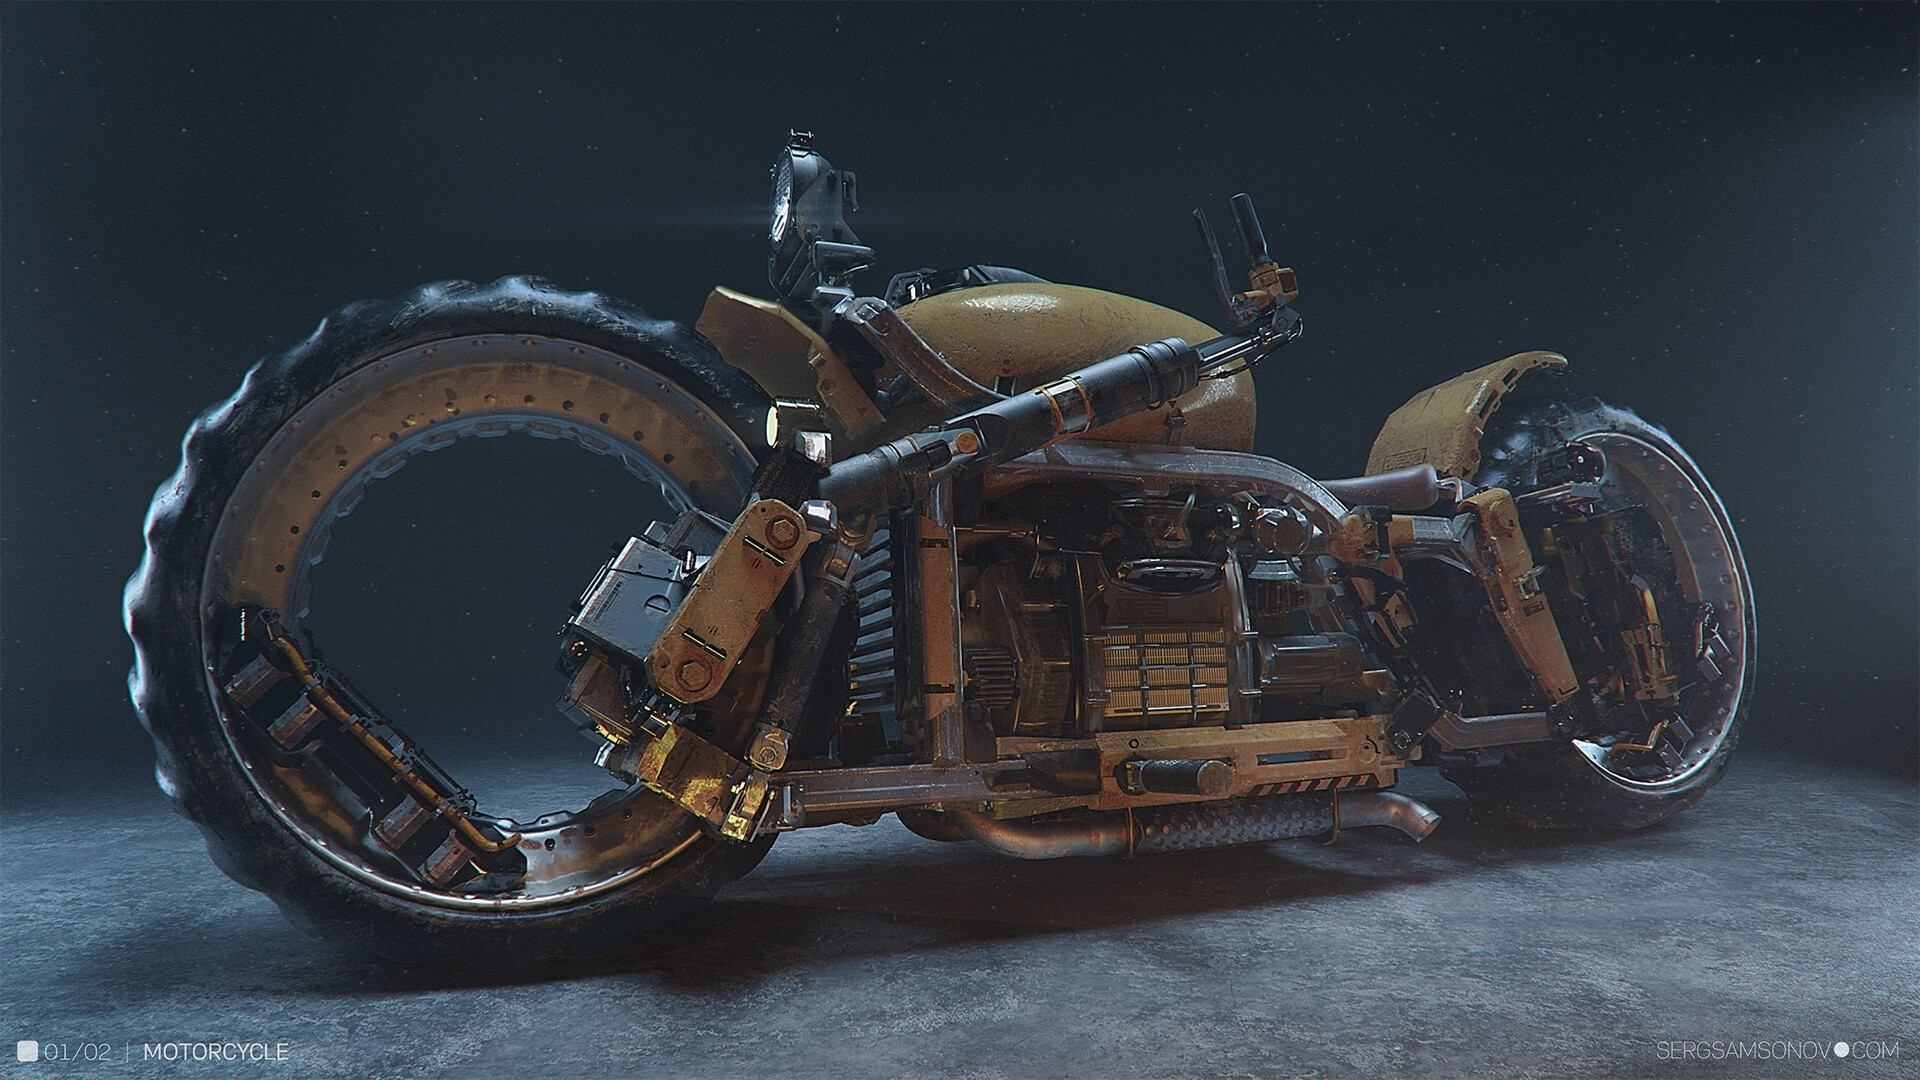 Yellow Motorcycle by Serge Samsonov